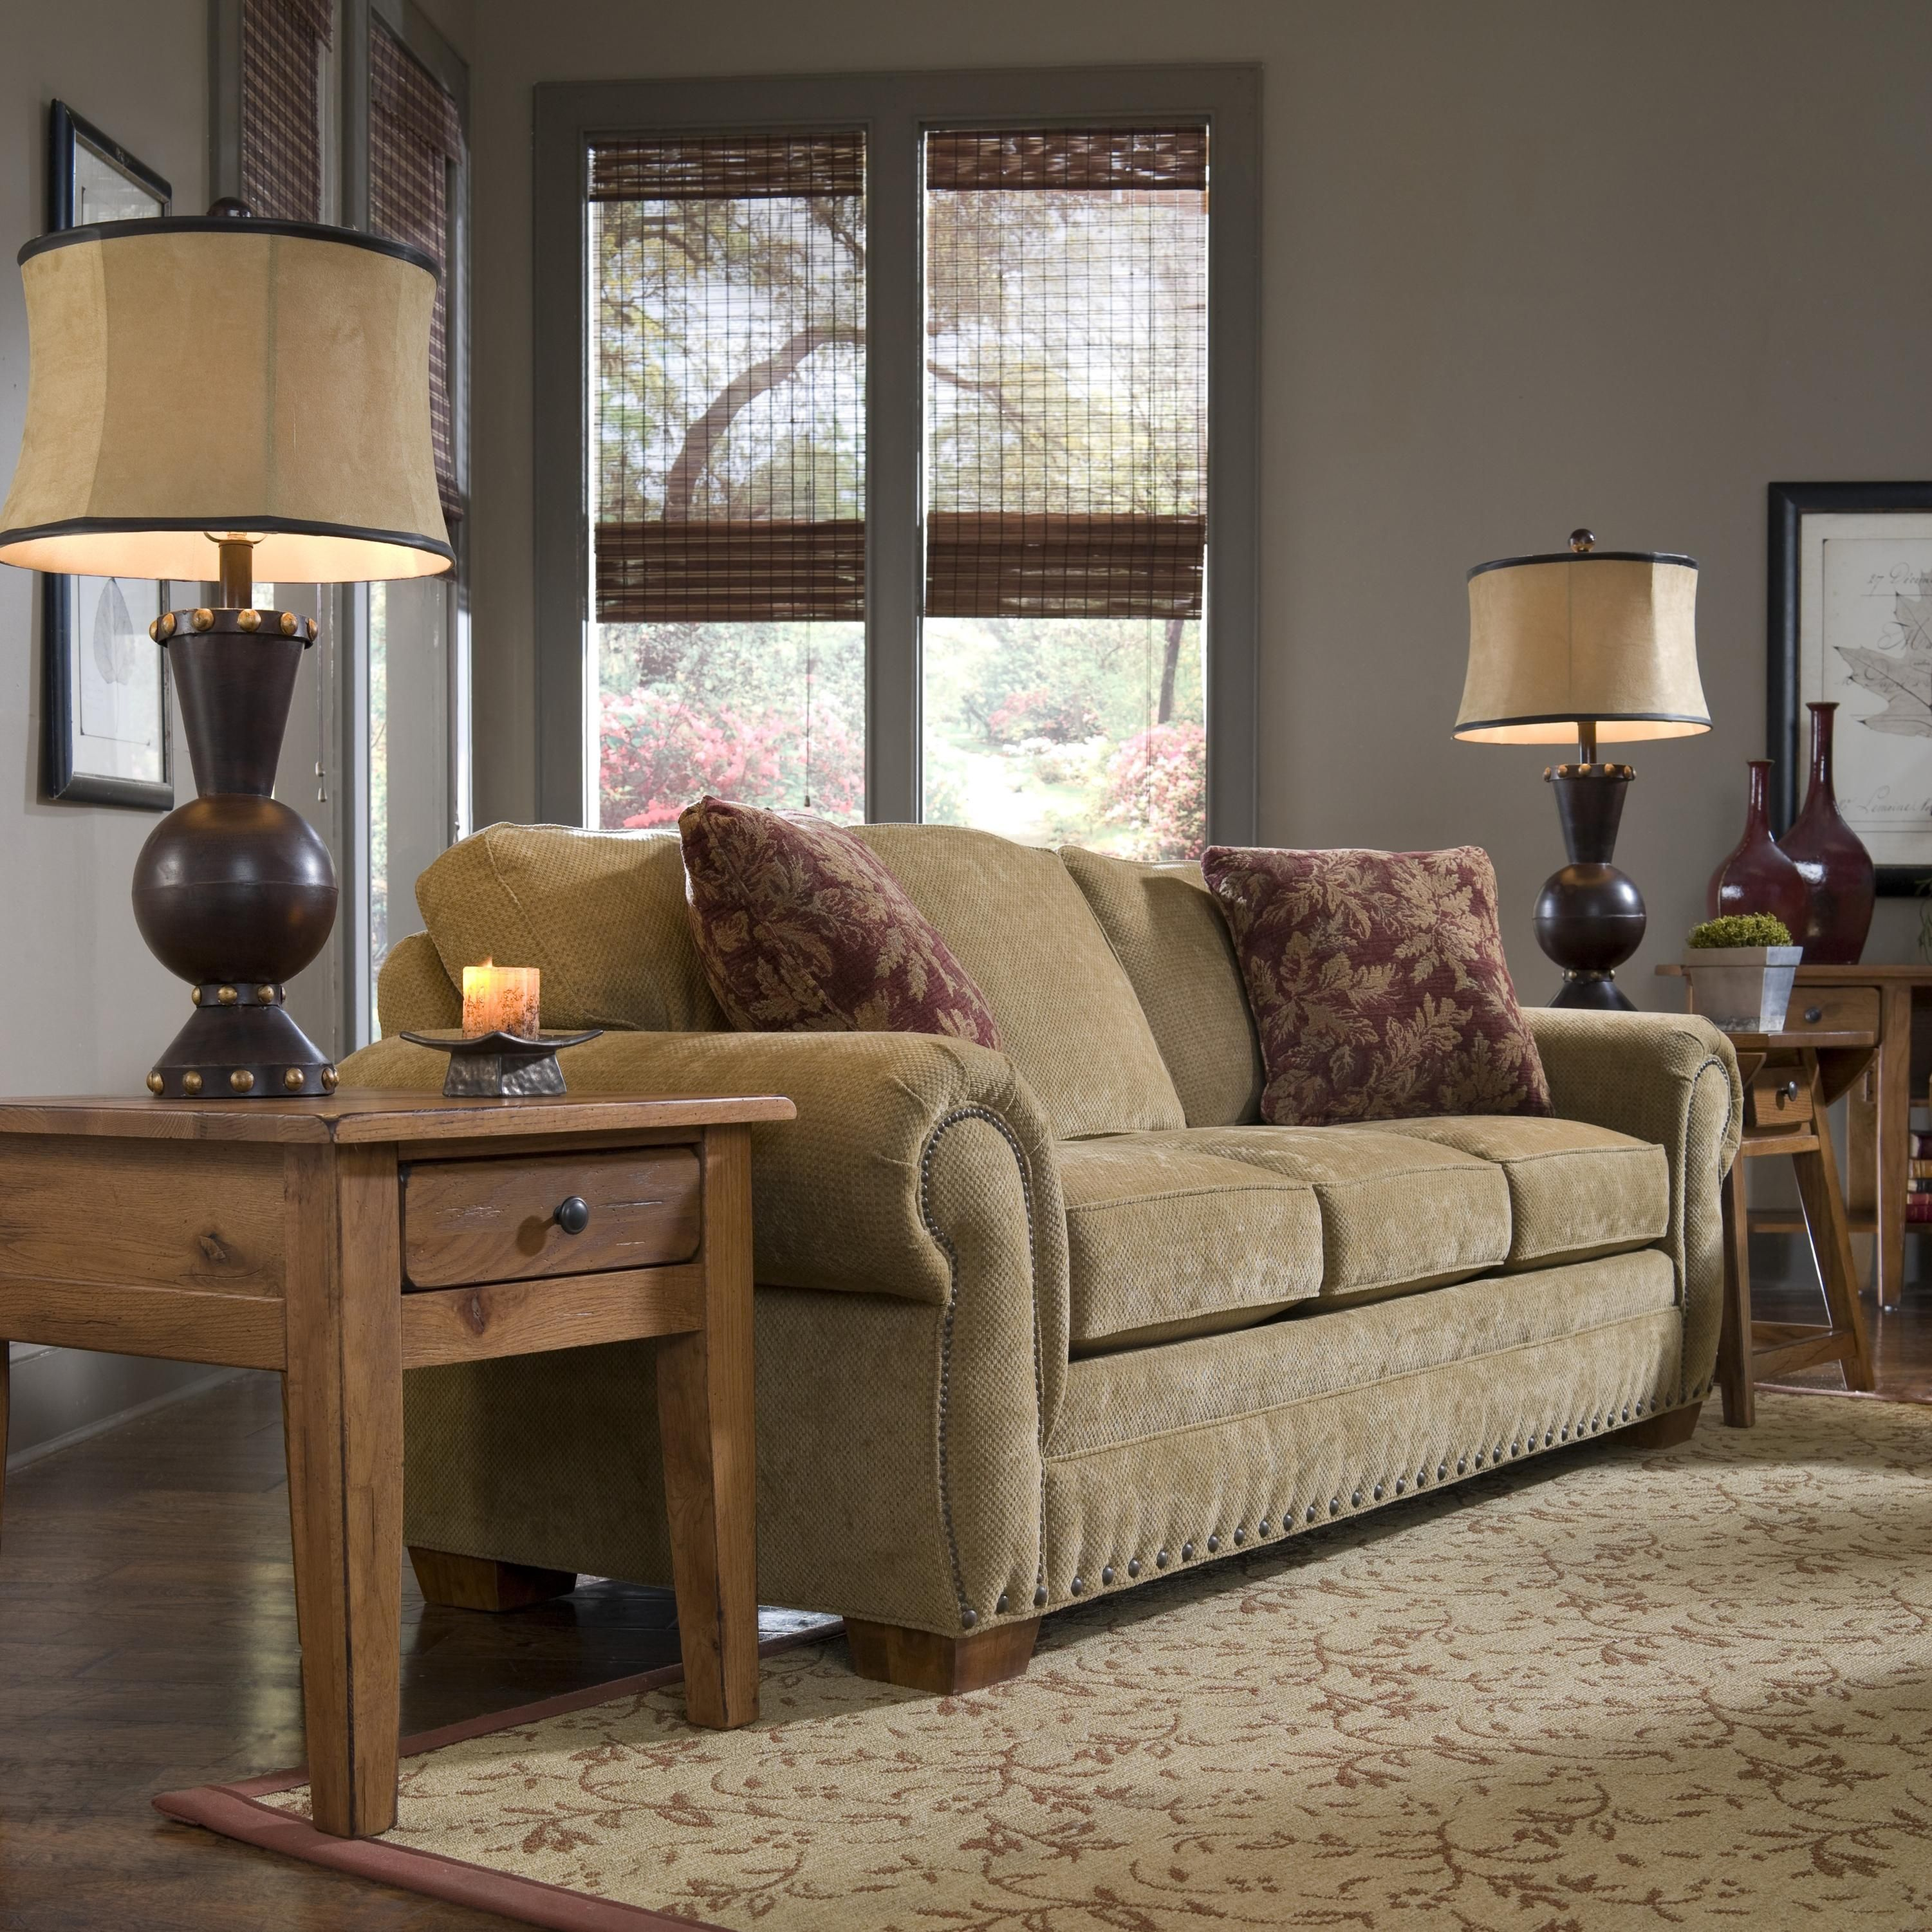 5054 Cambridge Casual Style Sofa With Nail Head Trim By Broyhill Furniture    Becker Furniture World   Sofa Twin Cities, Minneapolis, St. Paul,  Minnesota